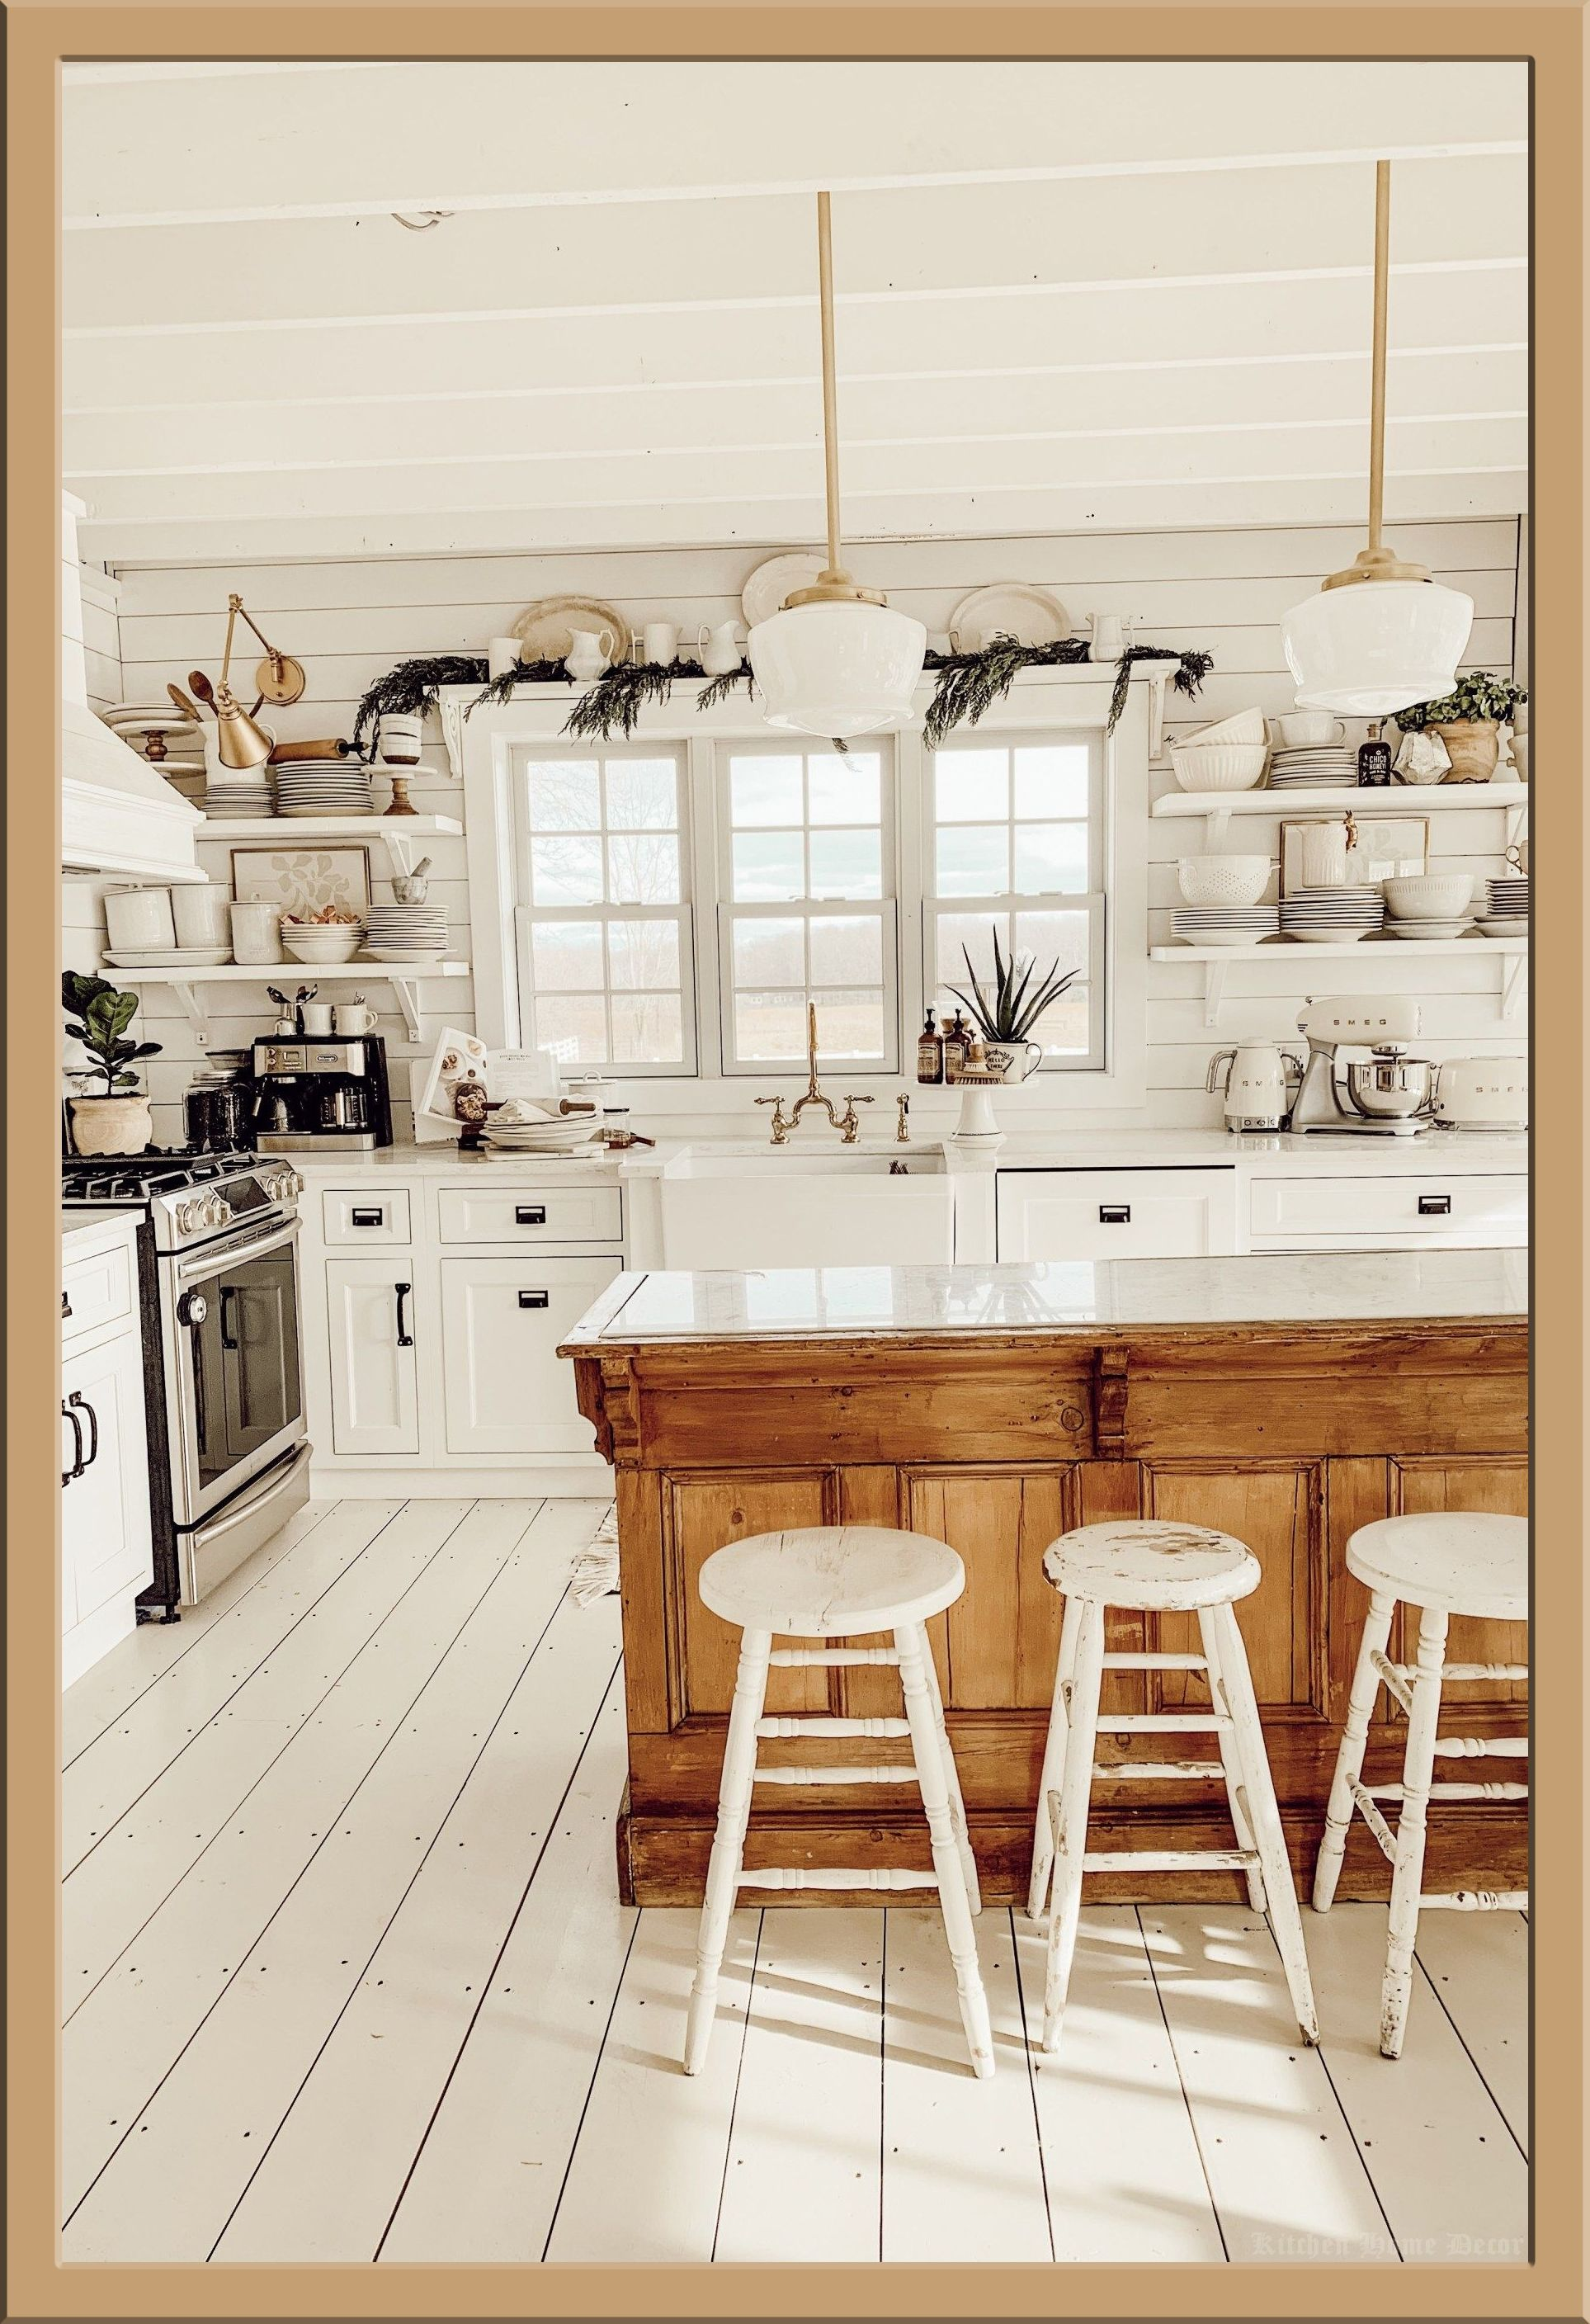 5 Reasons Your Kitchen Decor Is Not What It Could Be